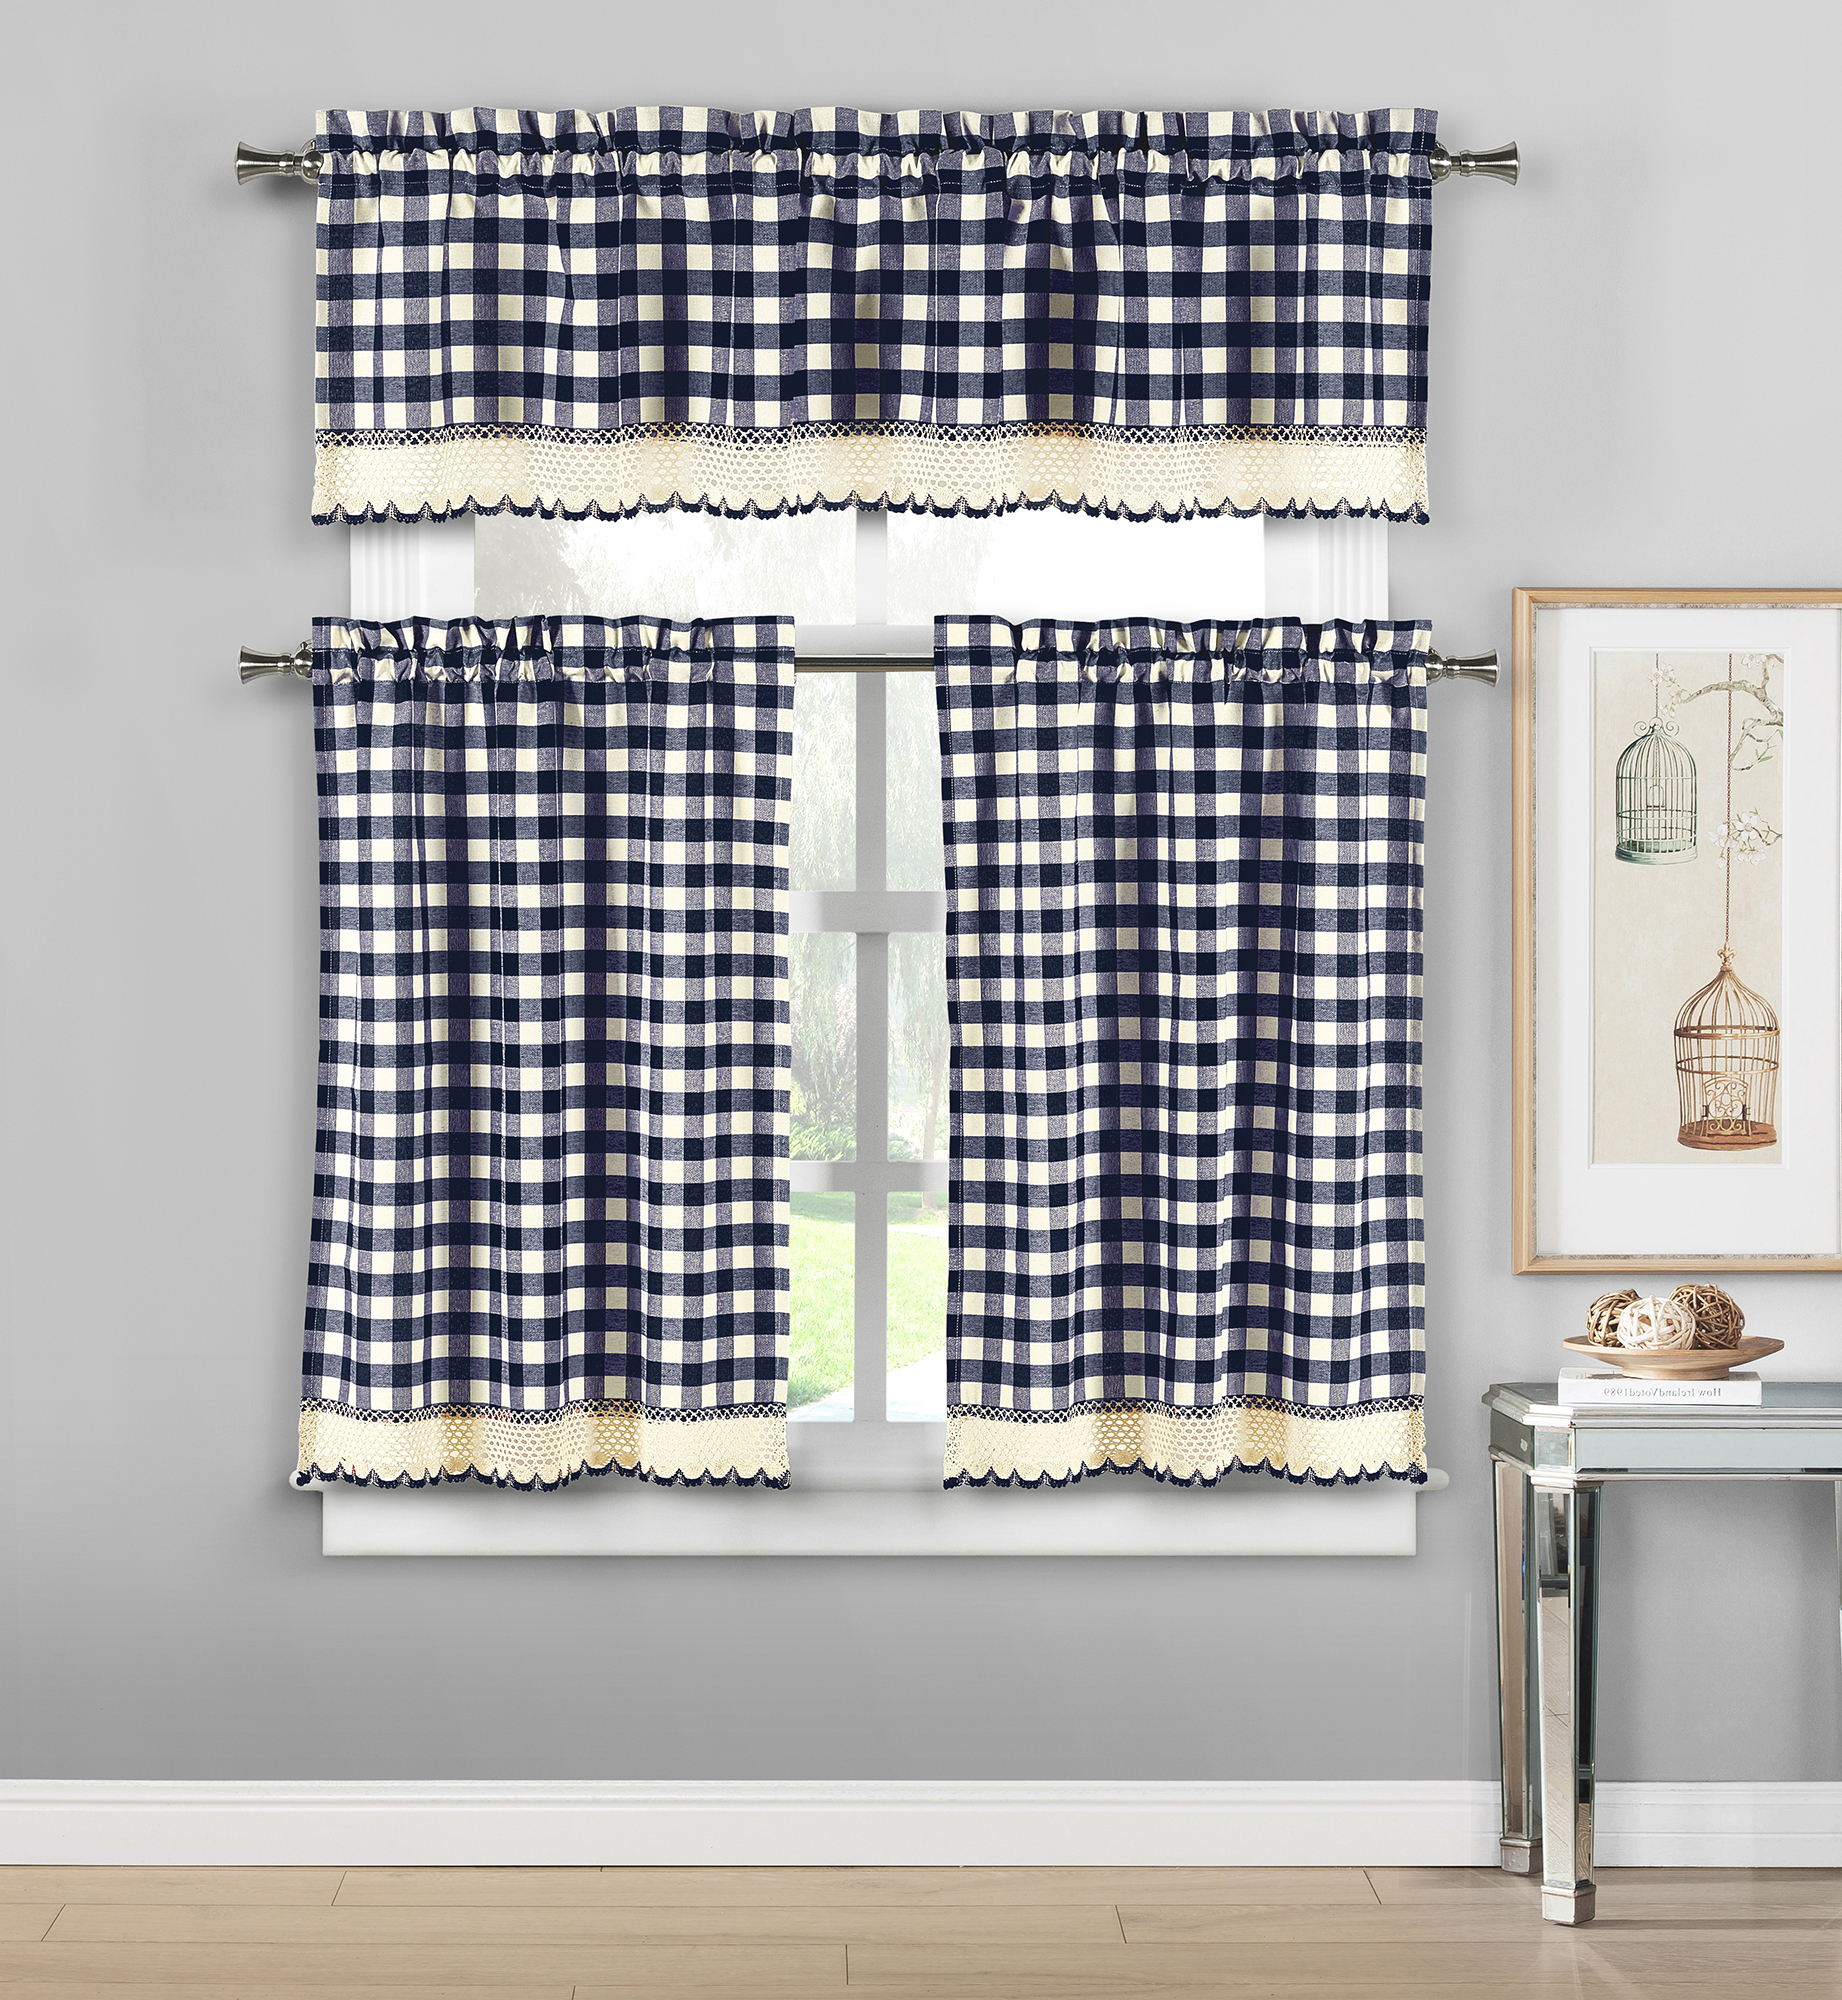 [%details About Plaid Checkered 100% Cotton 3 Piece Set Window Kitchen Curtain Tier & Valance Regarding Most Up To Date Window Curtain Tier And Valance Sets|window Curtain Tier And Valance Sets Intended For Most Recently Released Details About Plaid Checkered 100% Cotton 3 Piece Set Window Kitchen Curtain Tier & Valance|2021 Window Curtain Tier And Valance Sets Regarding Details About Plaid Checkered 100% Cotton 3 Piece Set Window Kitchen Curtain Tier & Valance|most Current Details About Plaid Checkered 100% Cotton 3 Piece Set Window Kitchen Curtain Tier & Valance With Window Curtain Tier And Valance Sets%] (View 19 of 20)